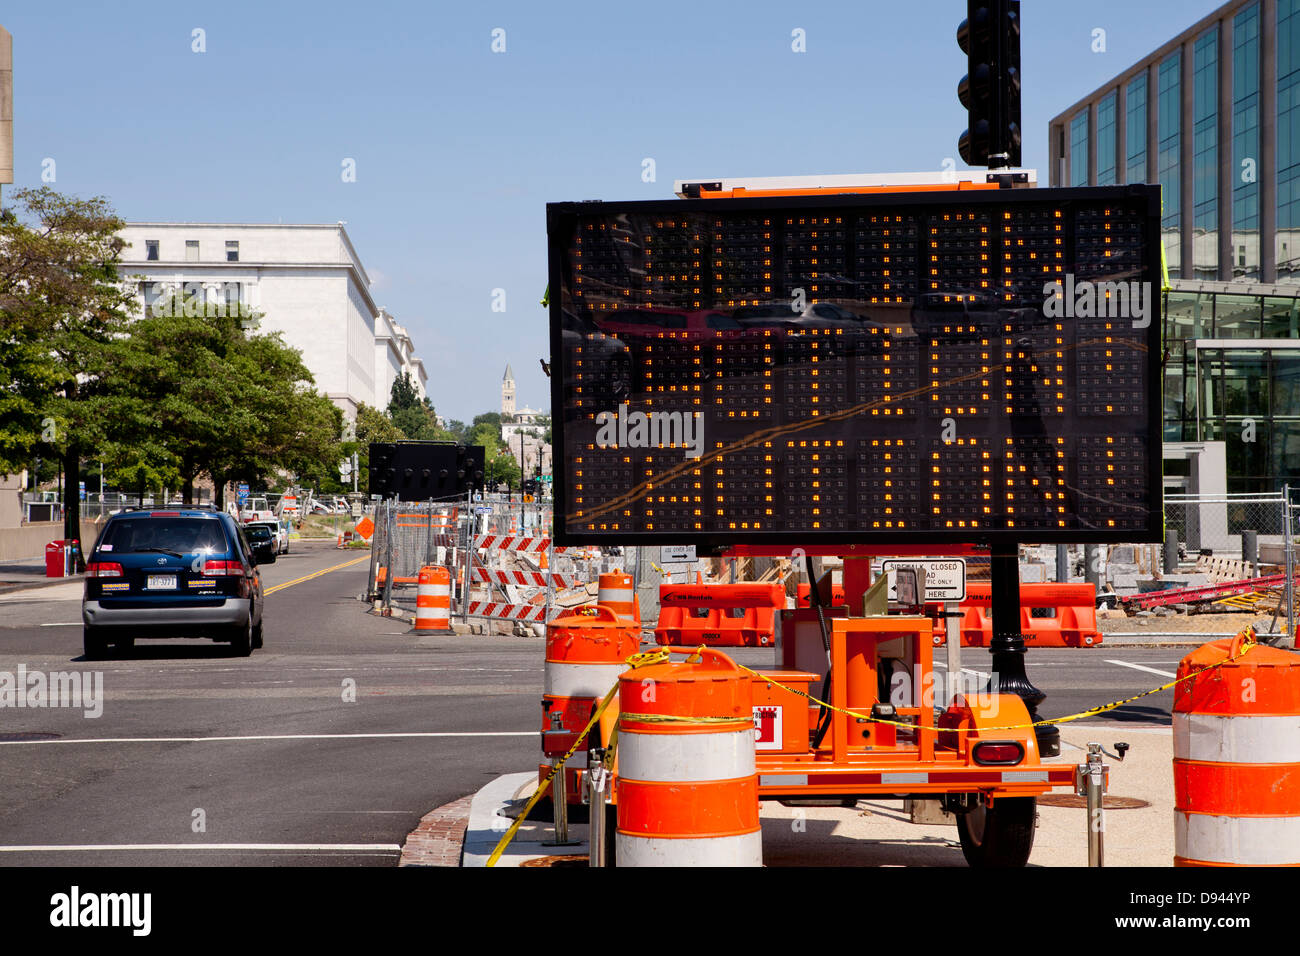 Caution roadwork sign - USA - Stock Image